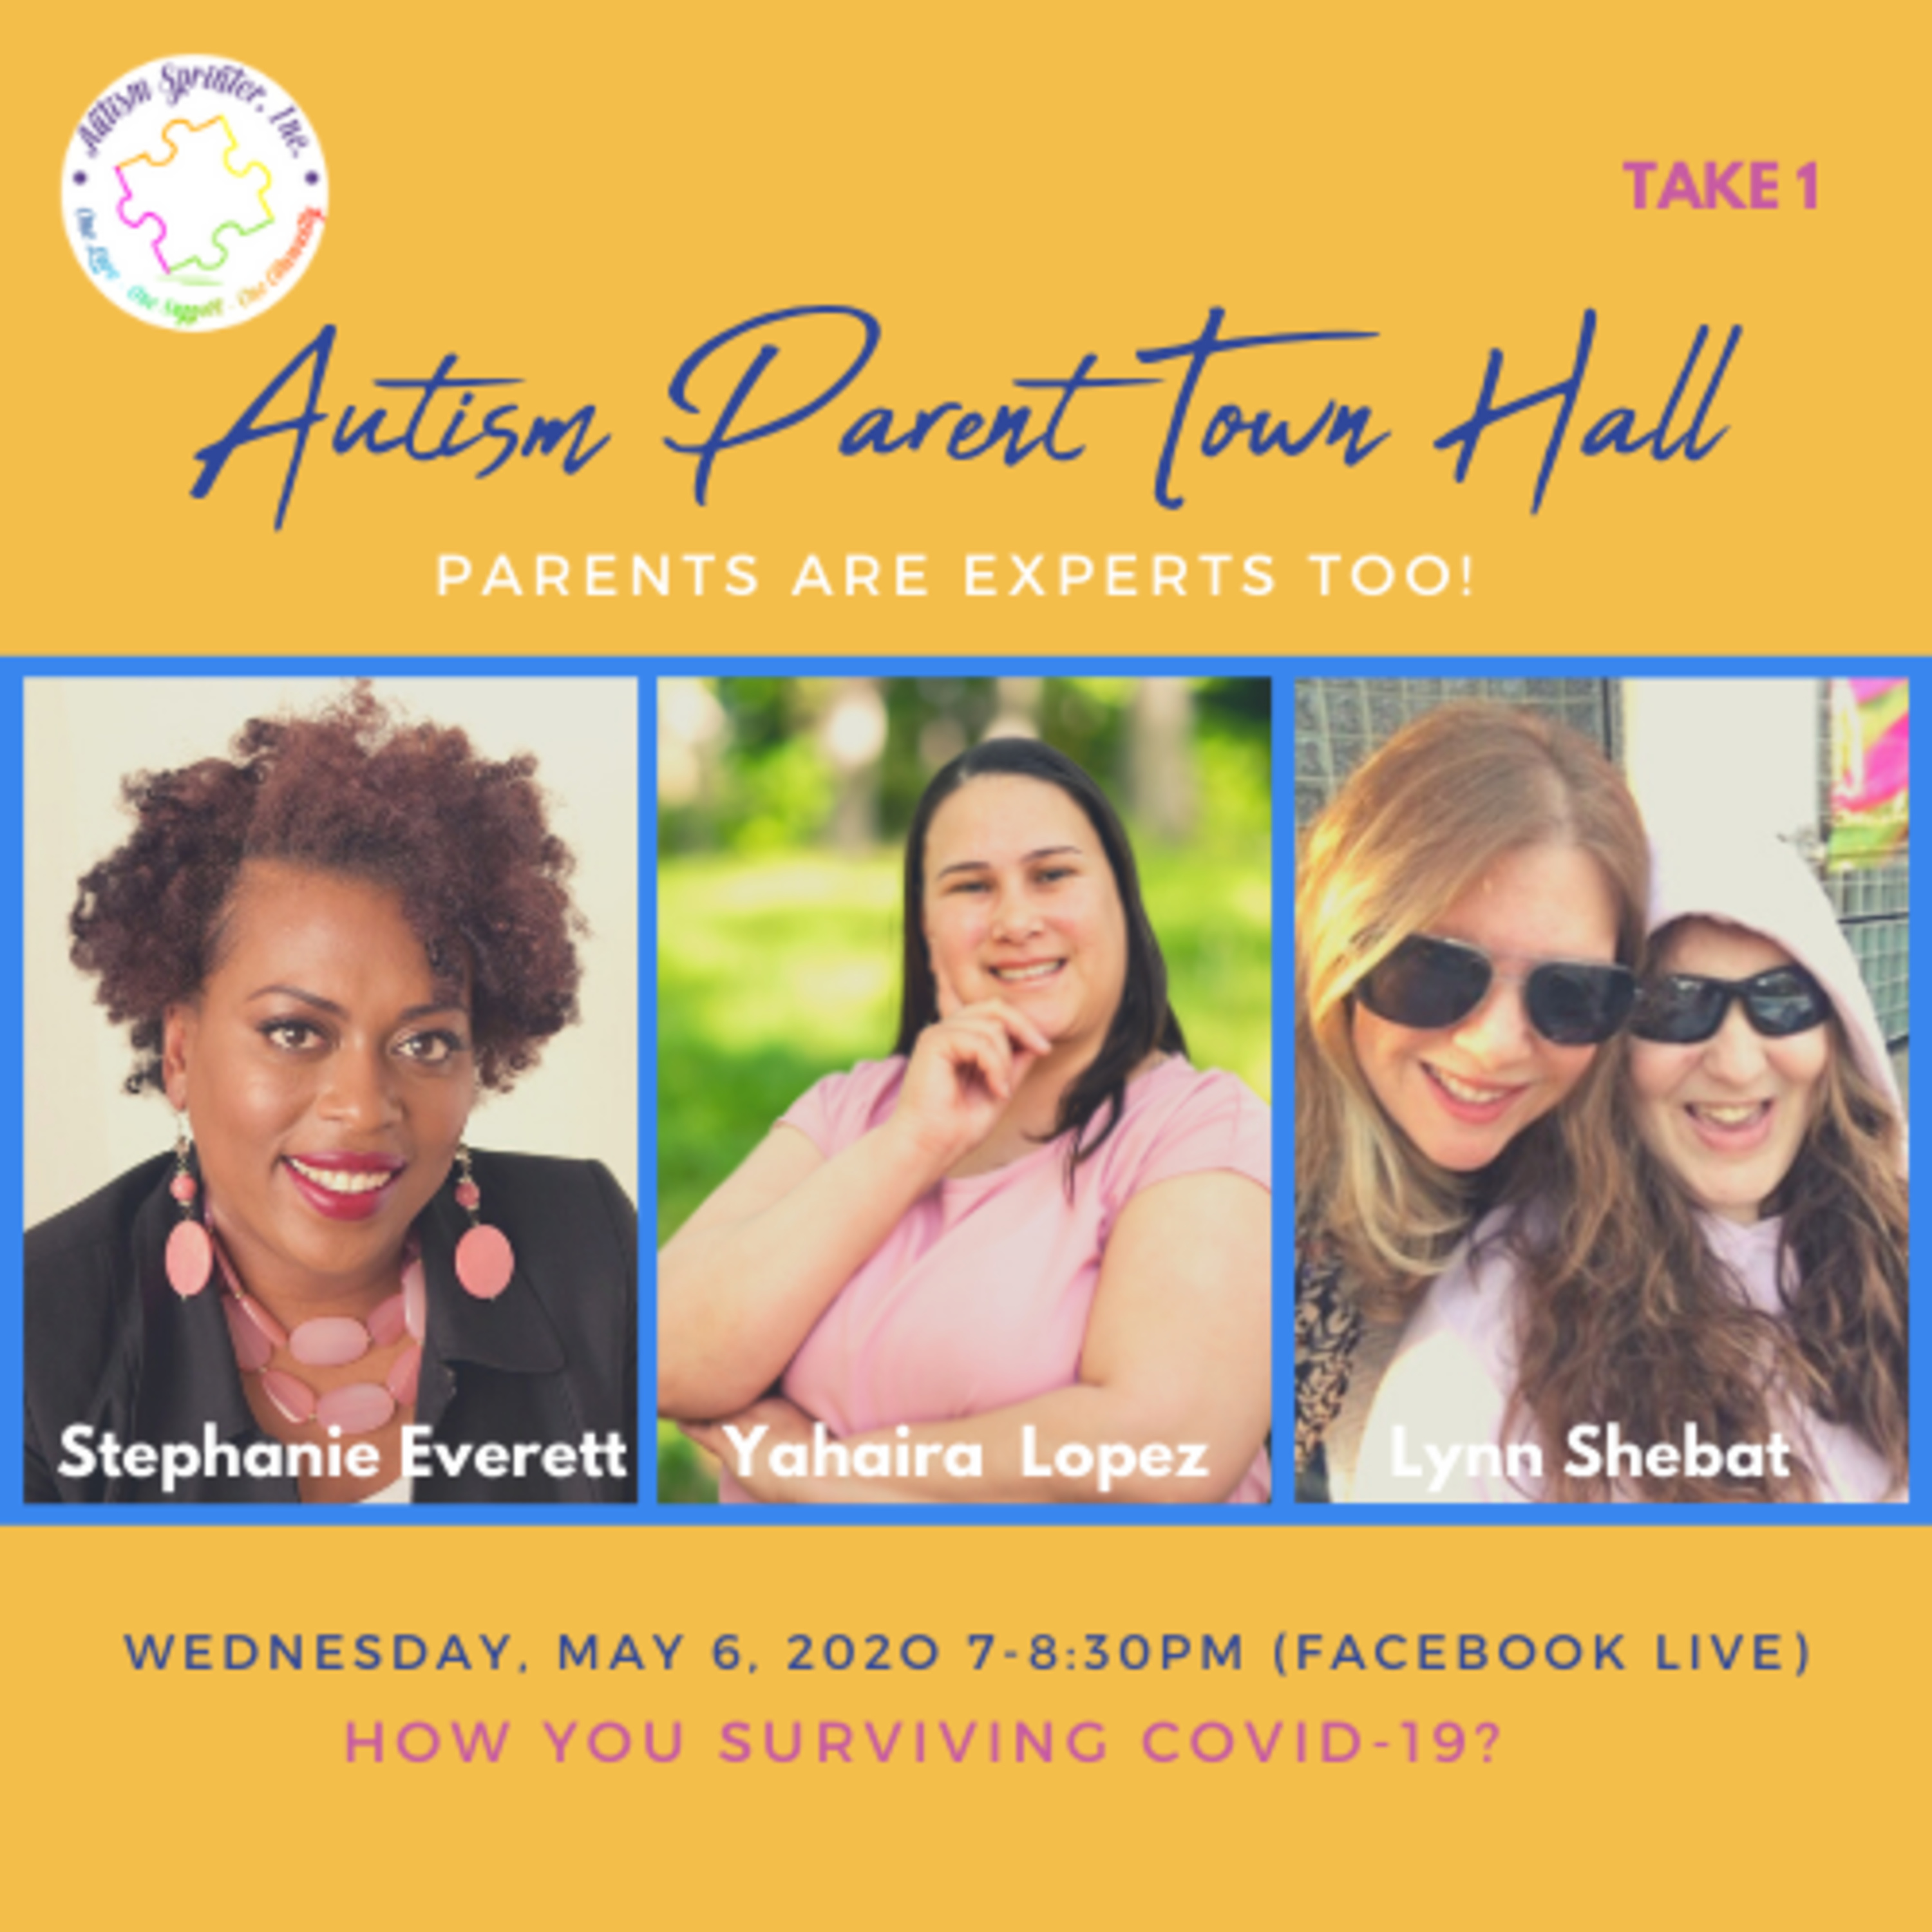 Autism Parent Town Hall (Take 1 Special Edition)